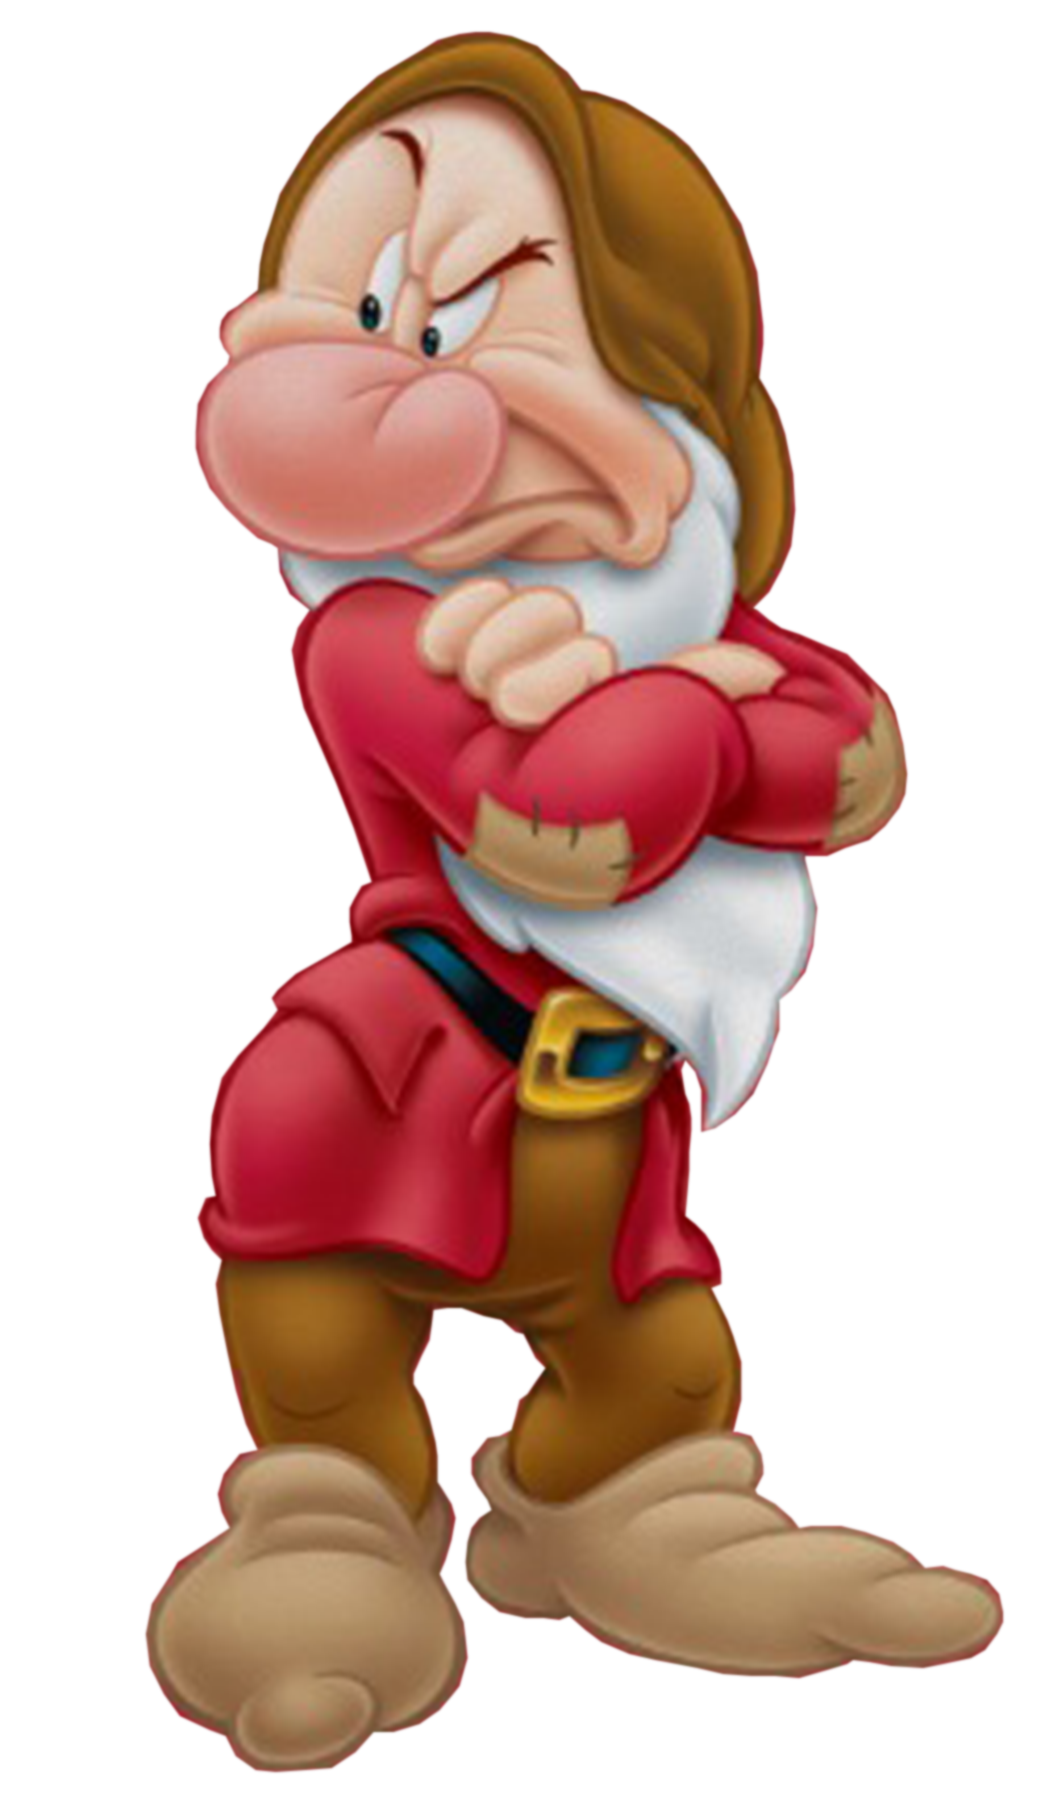 Dopey drawing sleepy dwarf. Png transparent images pluspng